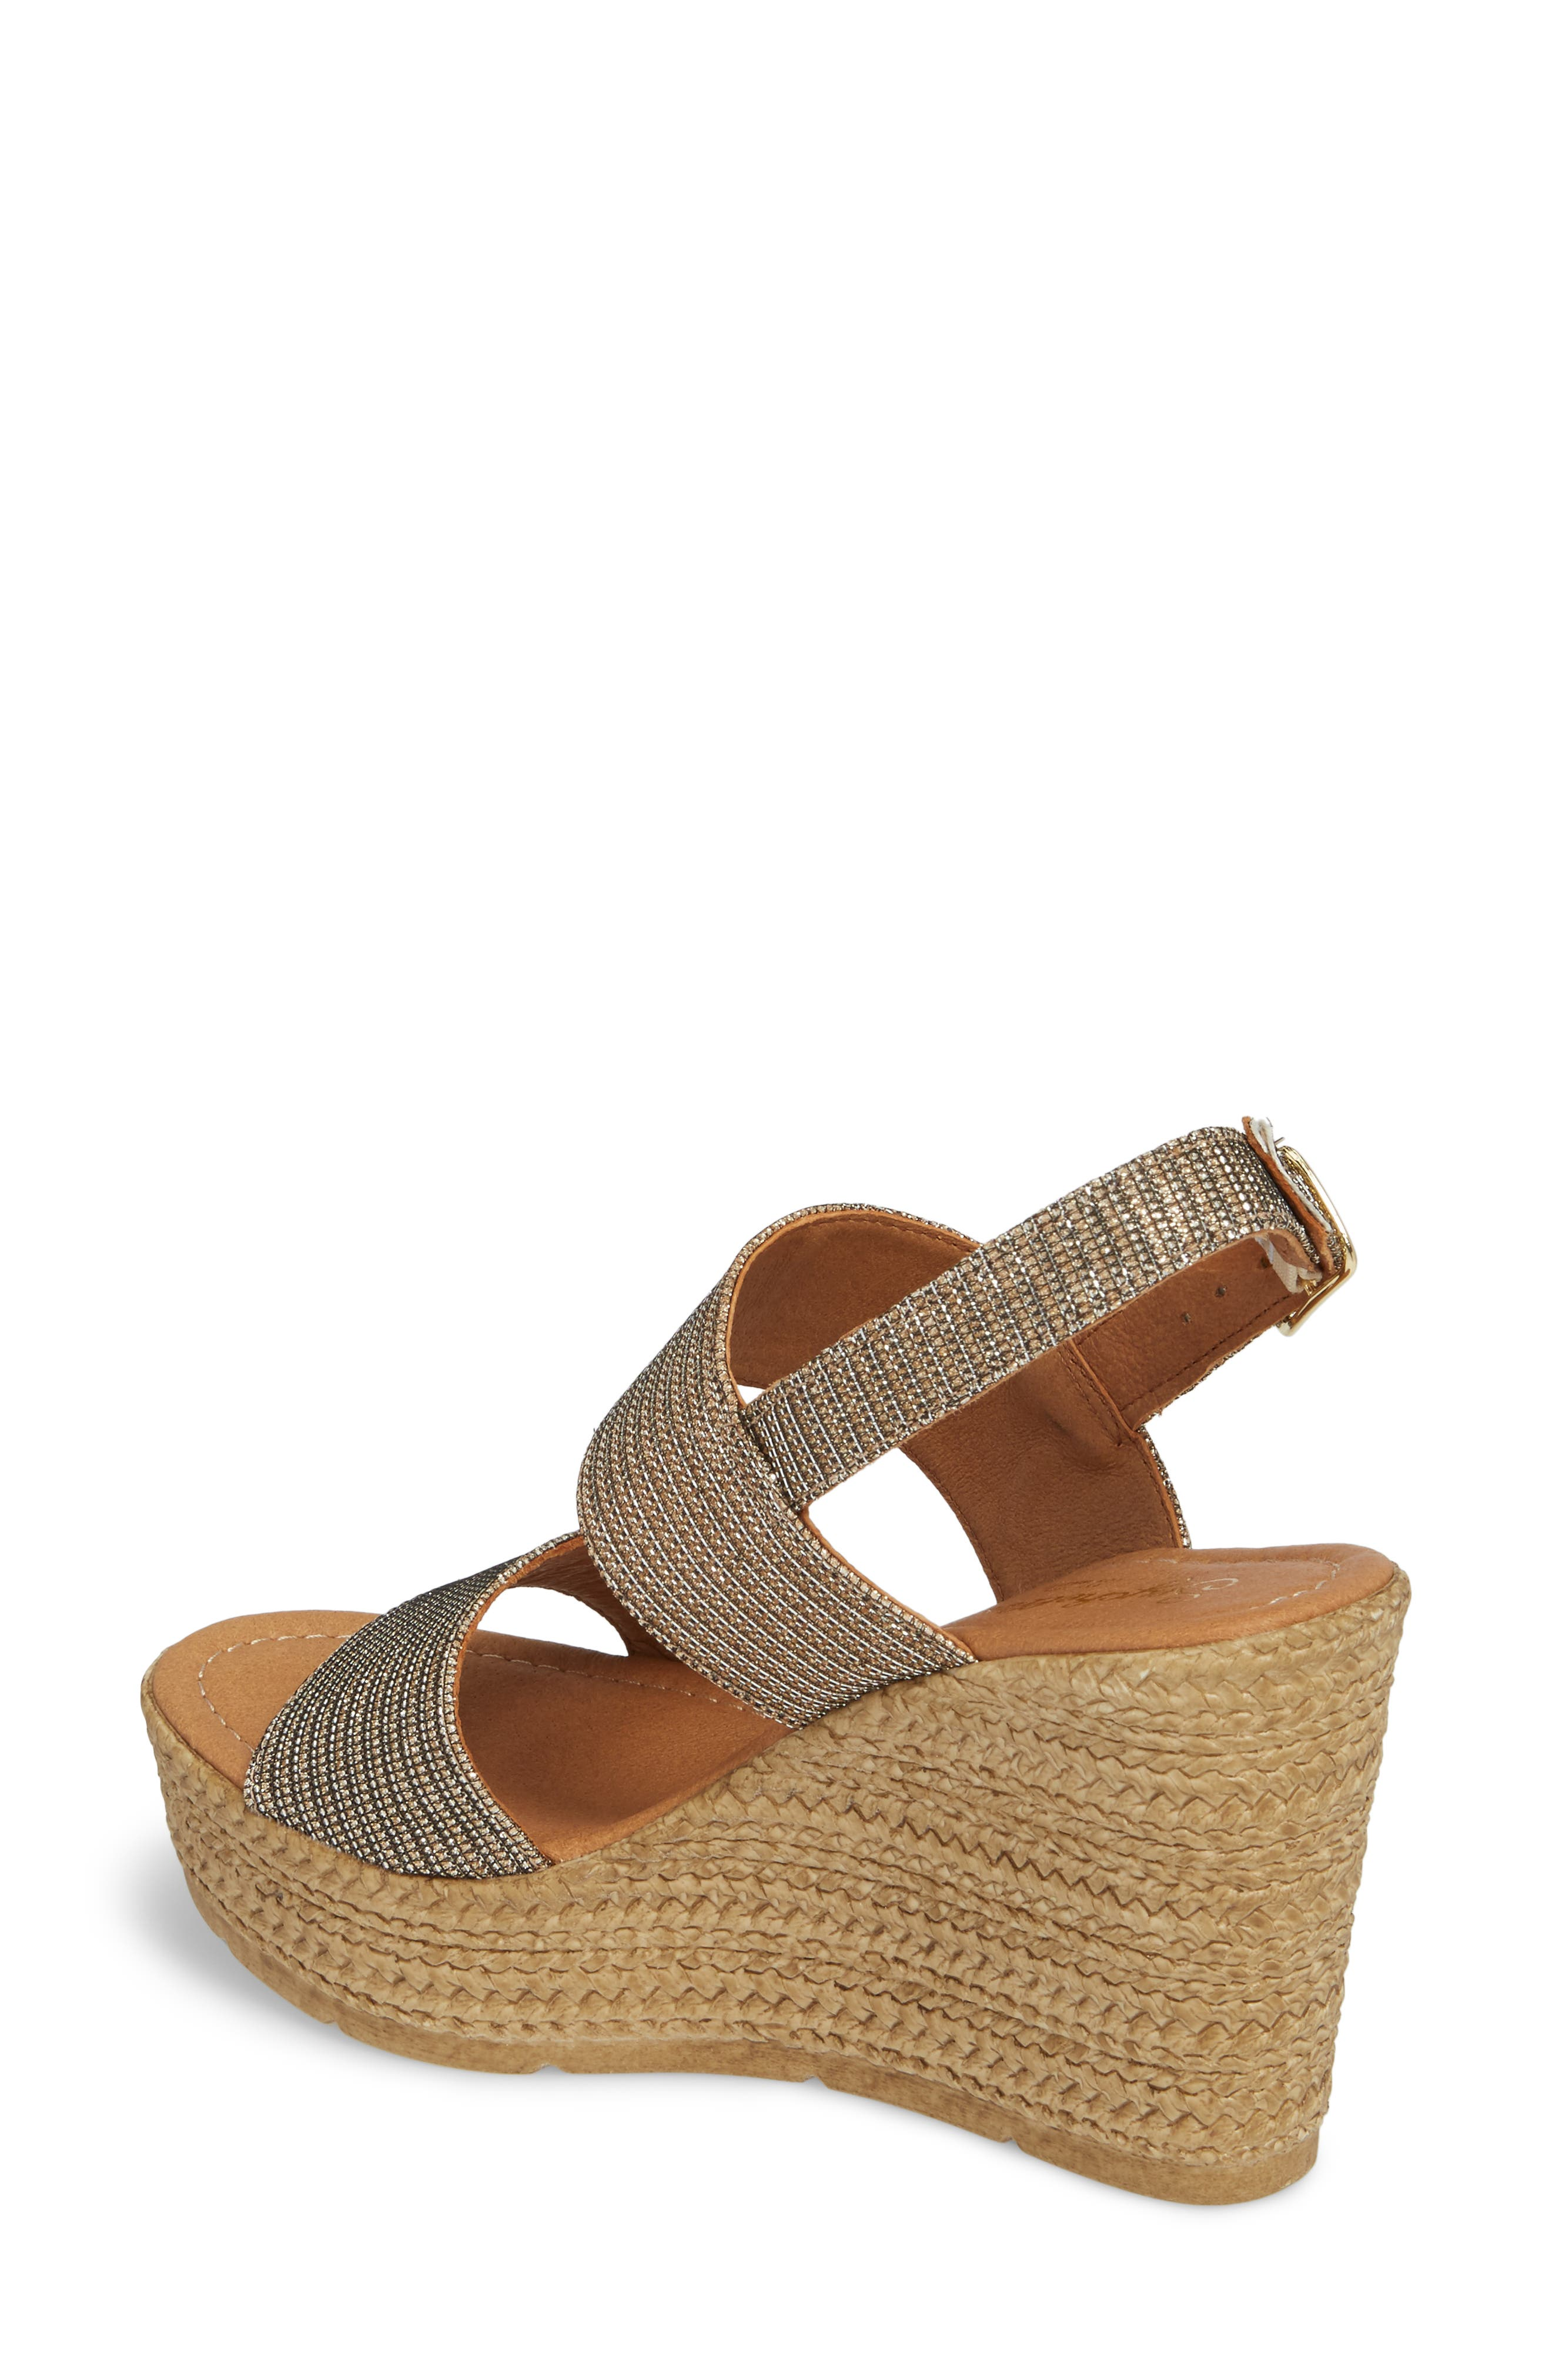 Downtime Wedge Sandal,                             Alternate thumbnail 2, color,                             Bronze Metallic Fabric